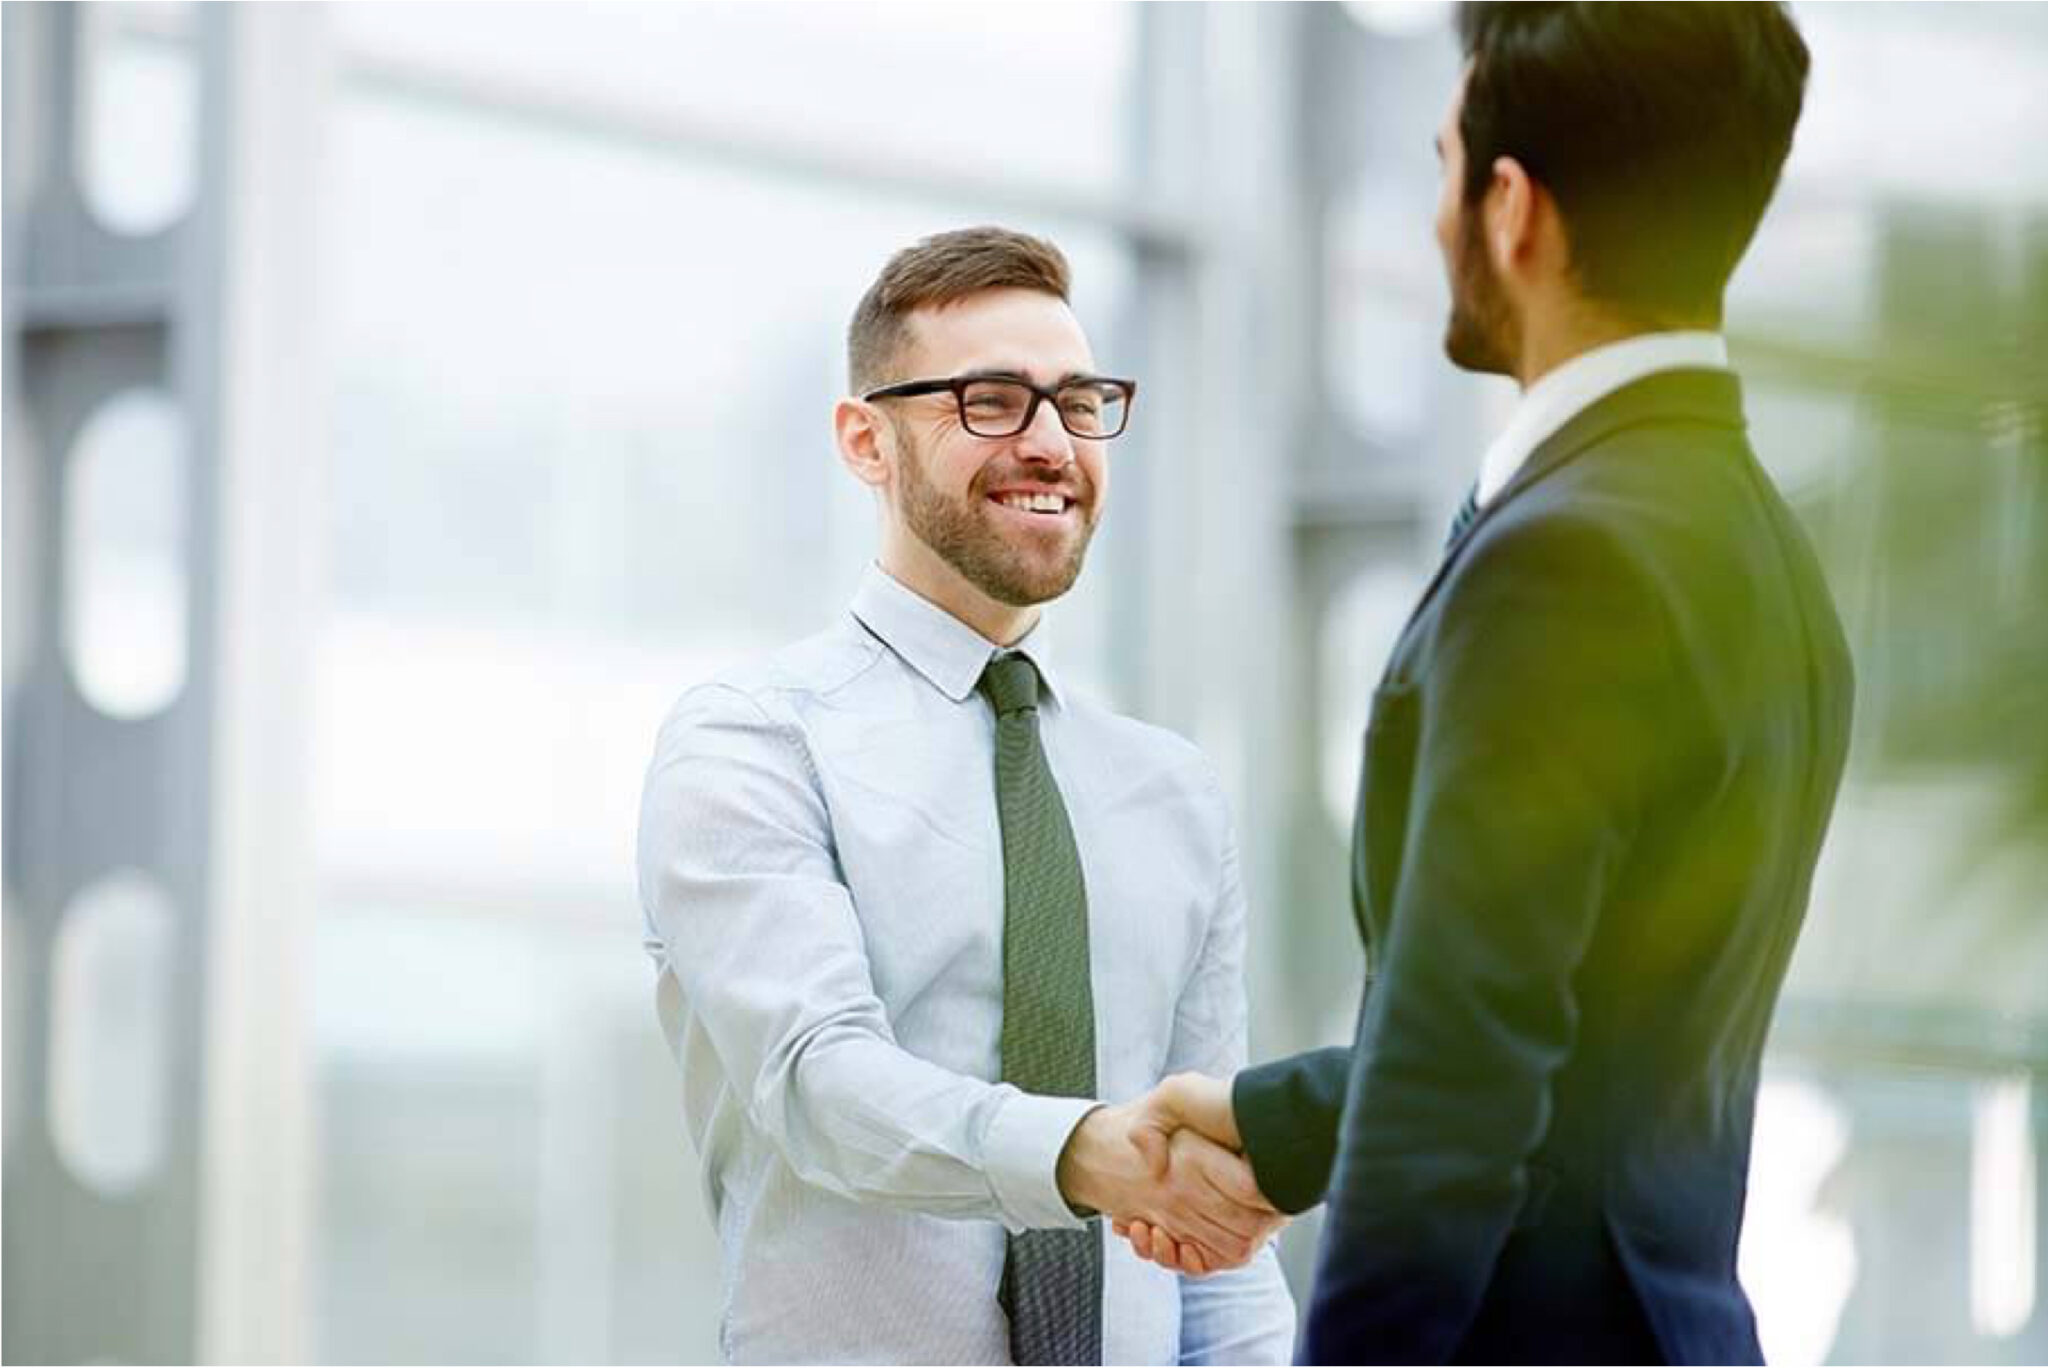 Two men in suits shaking hands.=